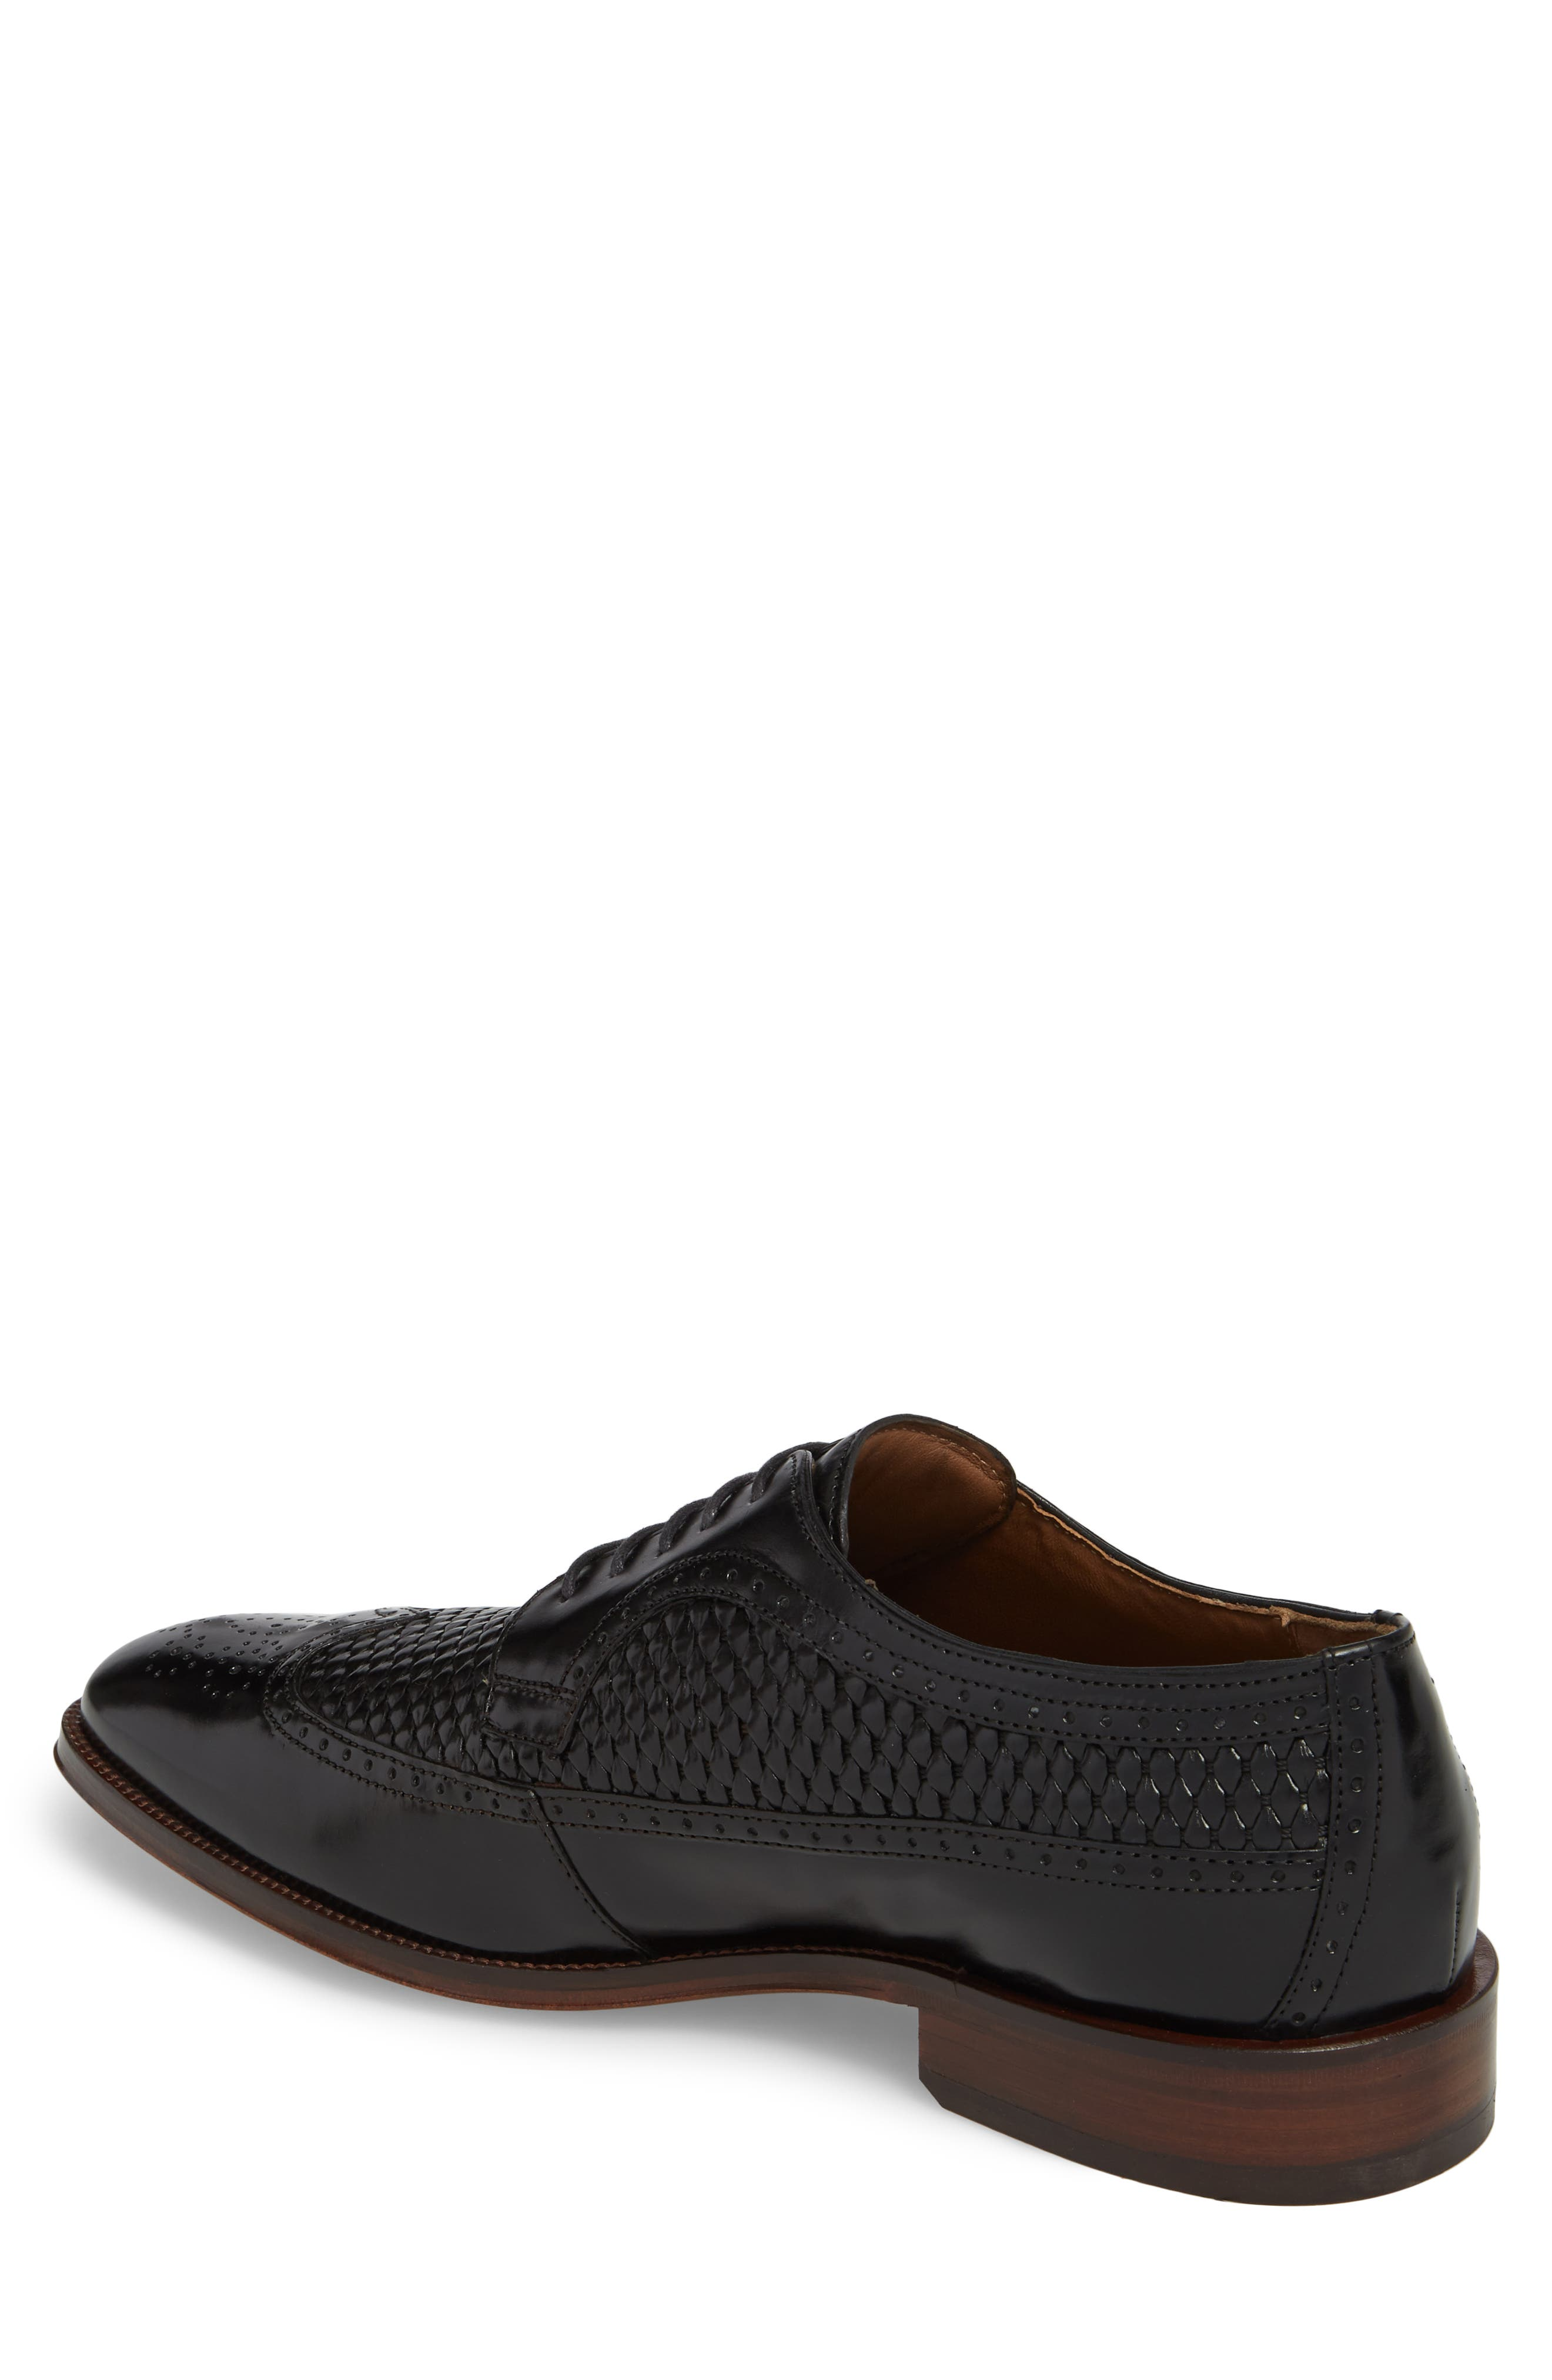 Boydstun Woven Wingtip Derby,                             Alternate thumbnail 2, color,                             Black Leather